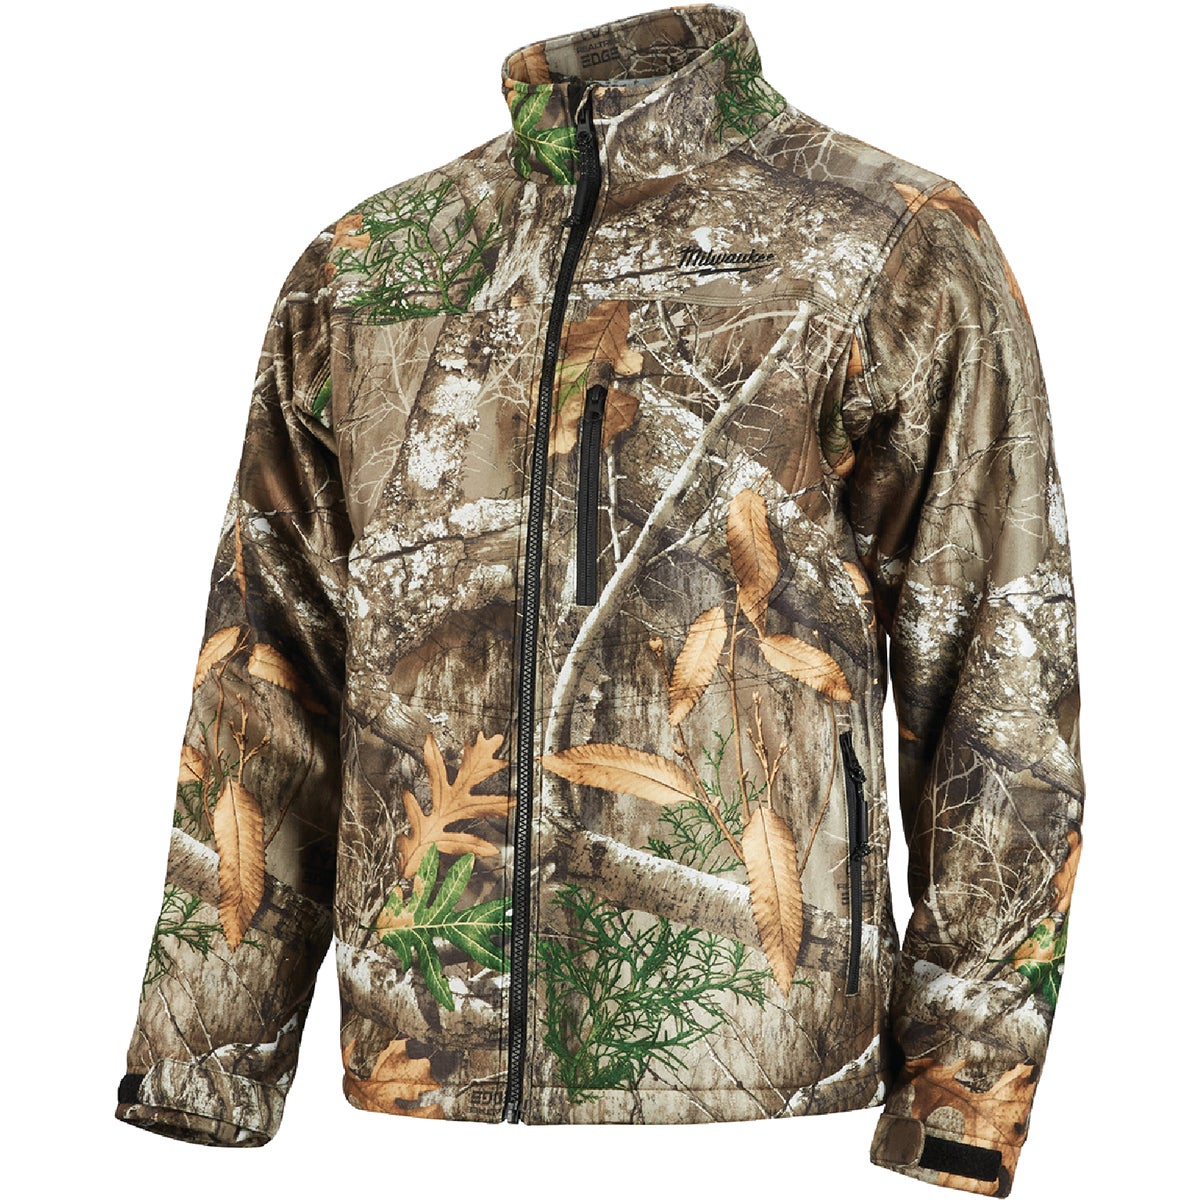 M12 L CAMO HEATED JACKET - 2343-L by Milwaukee Elec Tool